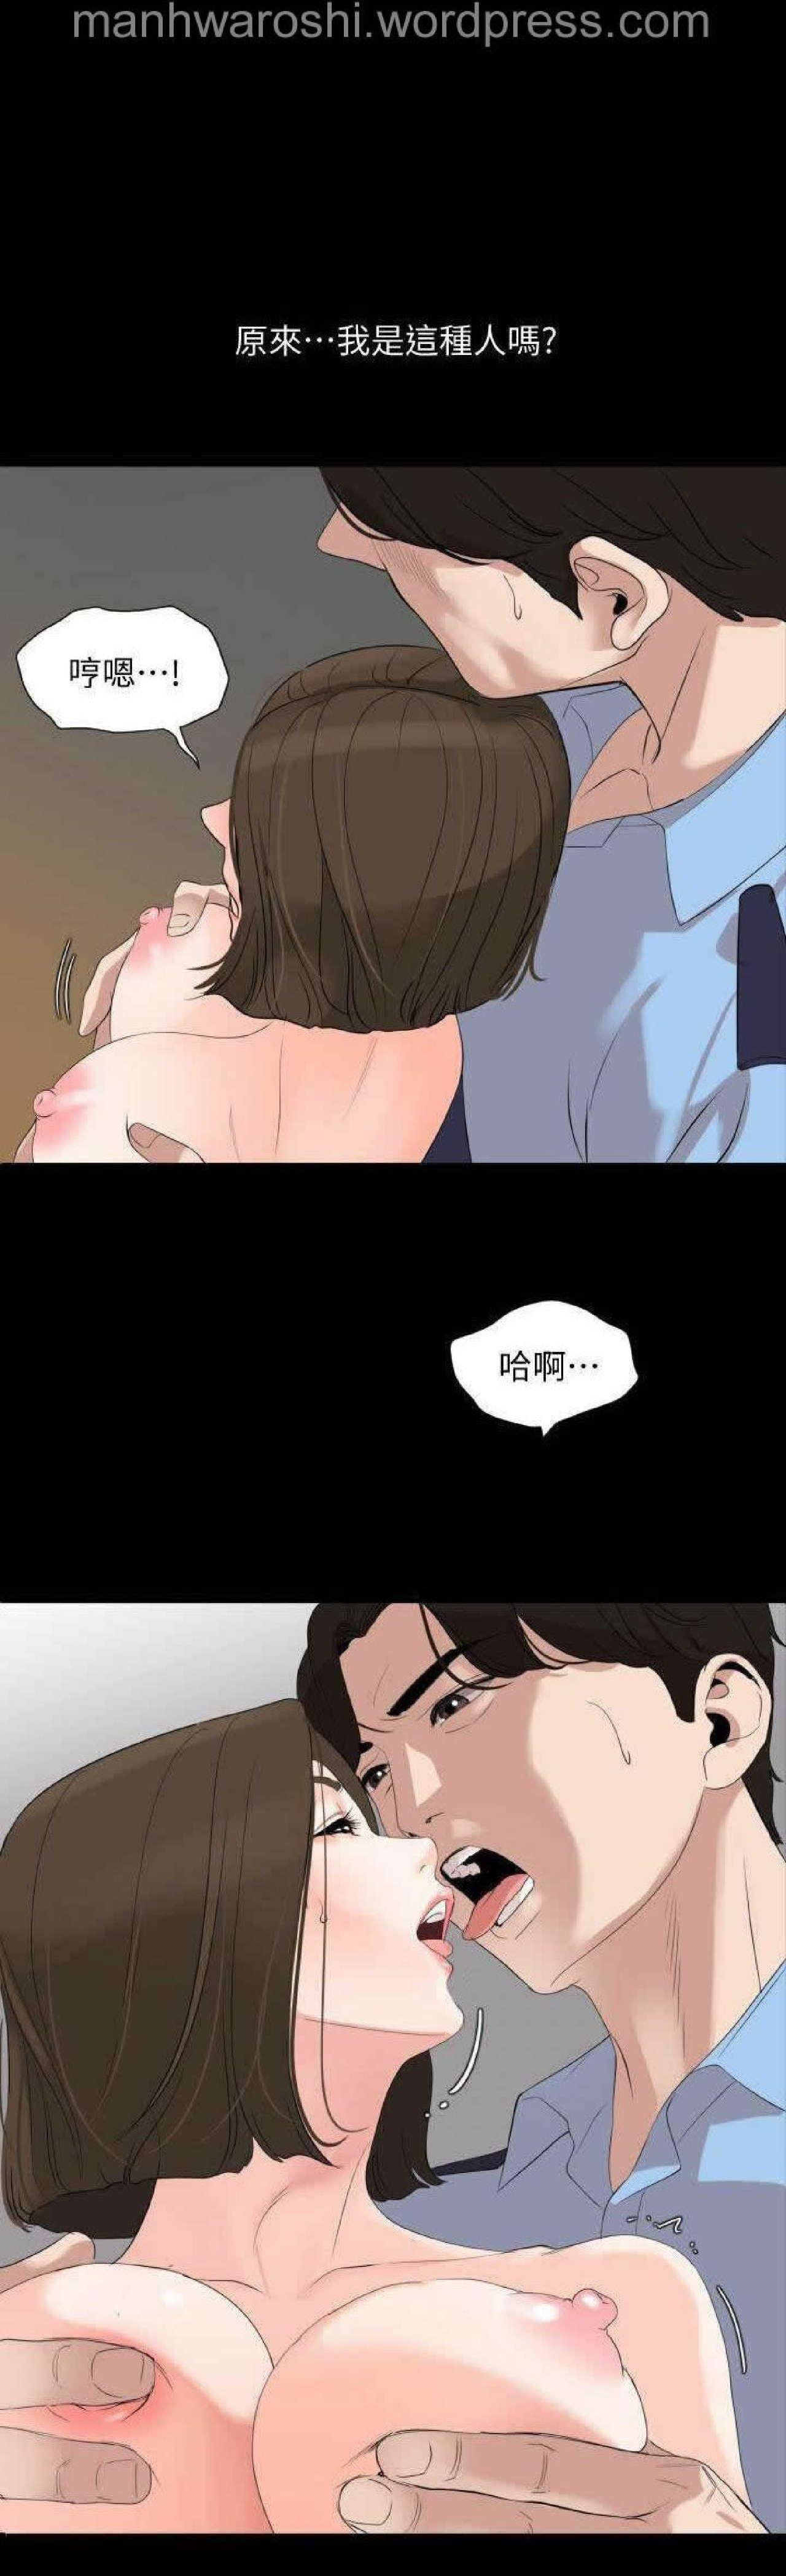 Don't Be Like This! Son-In-Law | 与岳母同屋 第 7 [Chinese] Manhwa 12